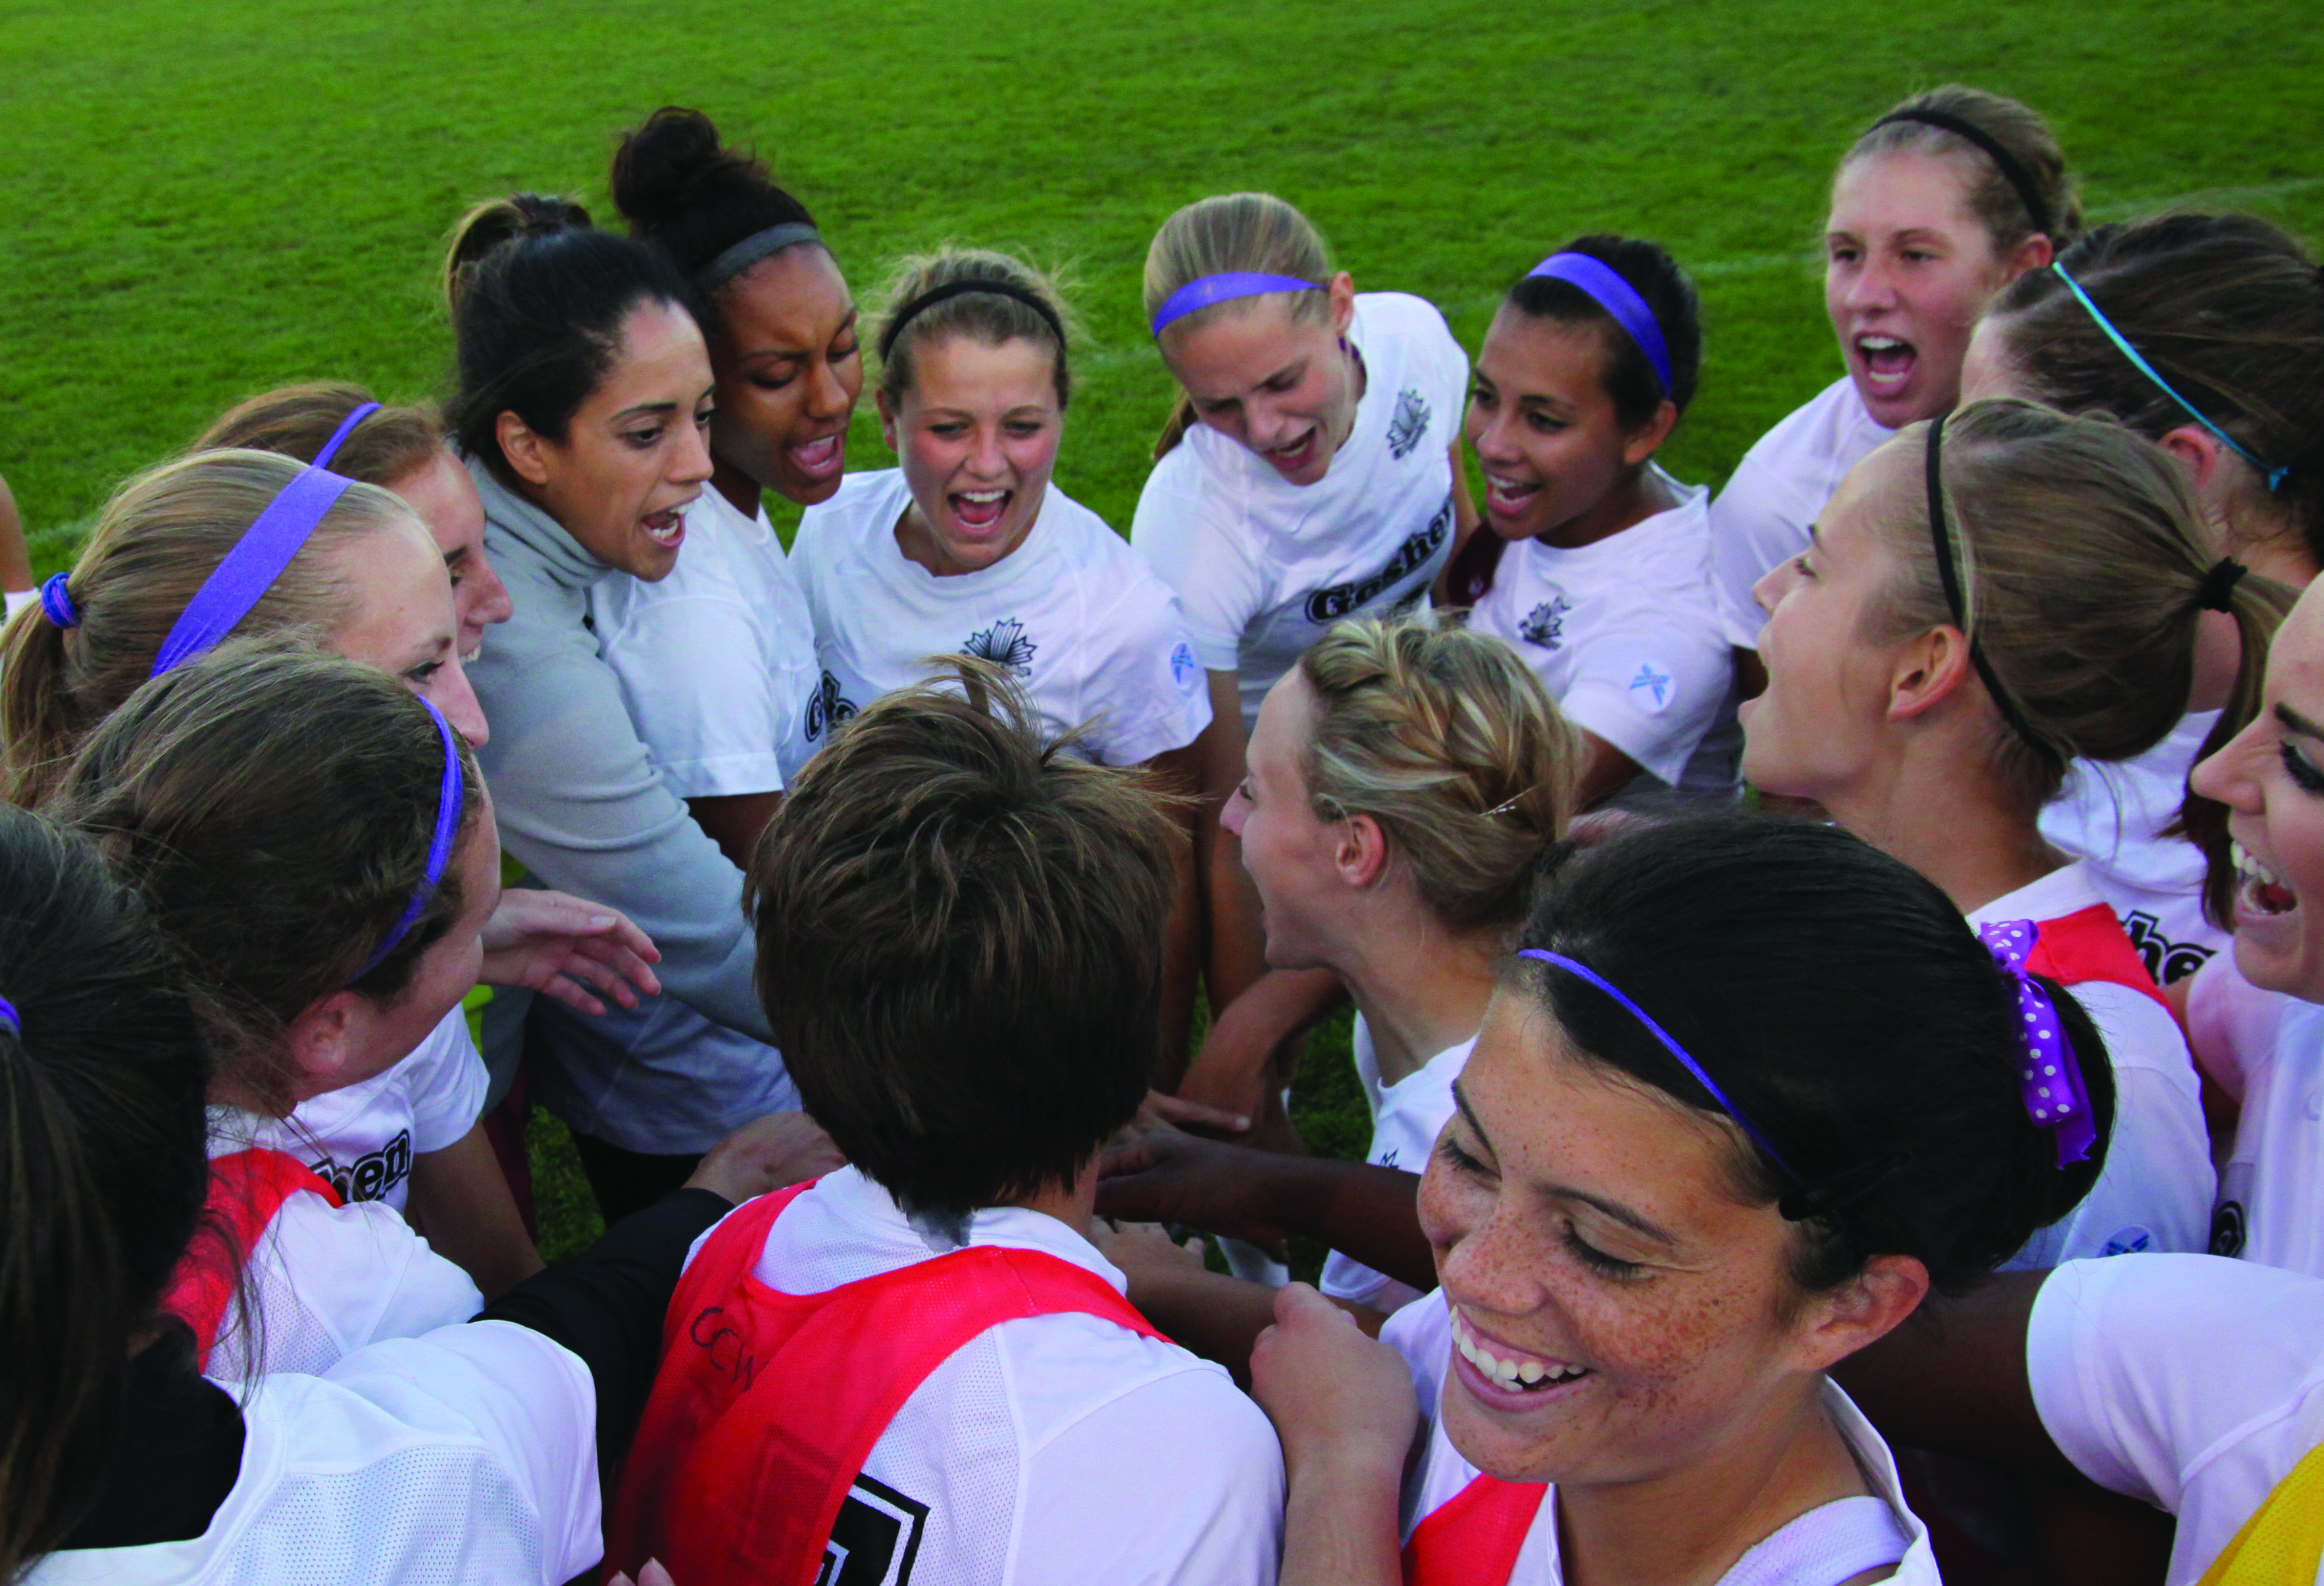 The women's soccer team enjoys a group embrace before a game